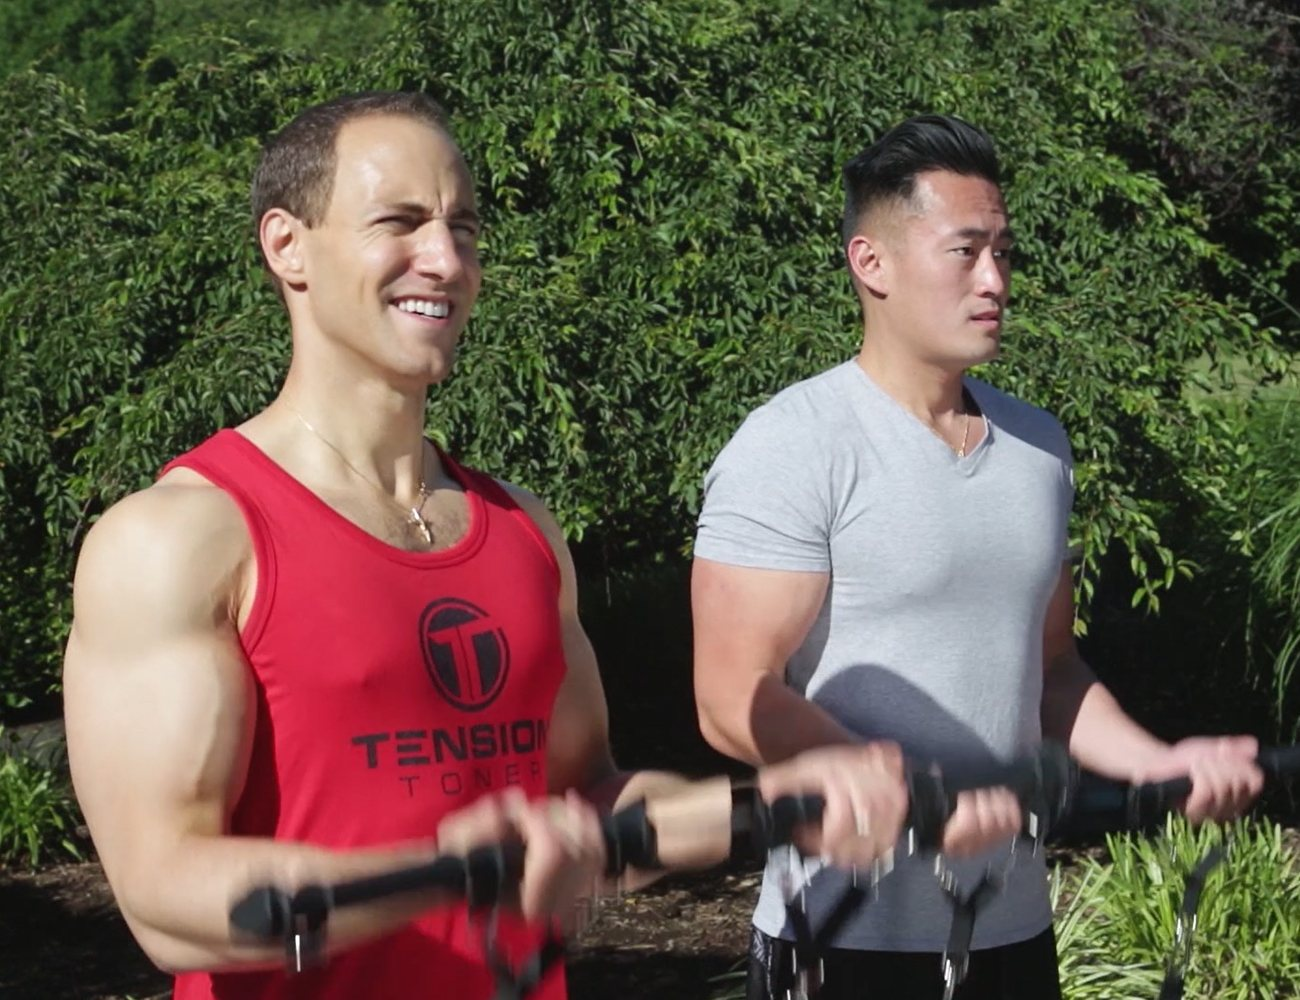 Tension Toner – Enhance Any Workout